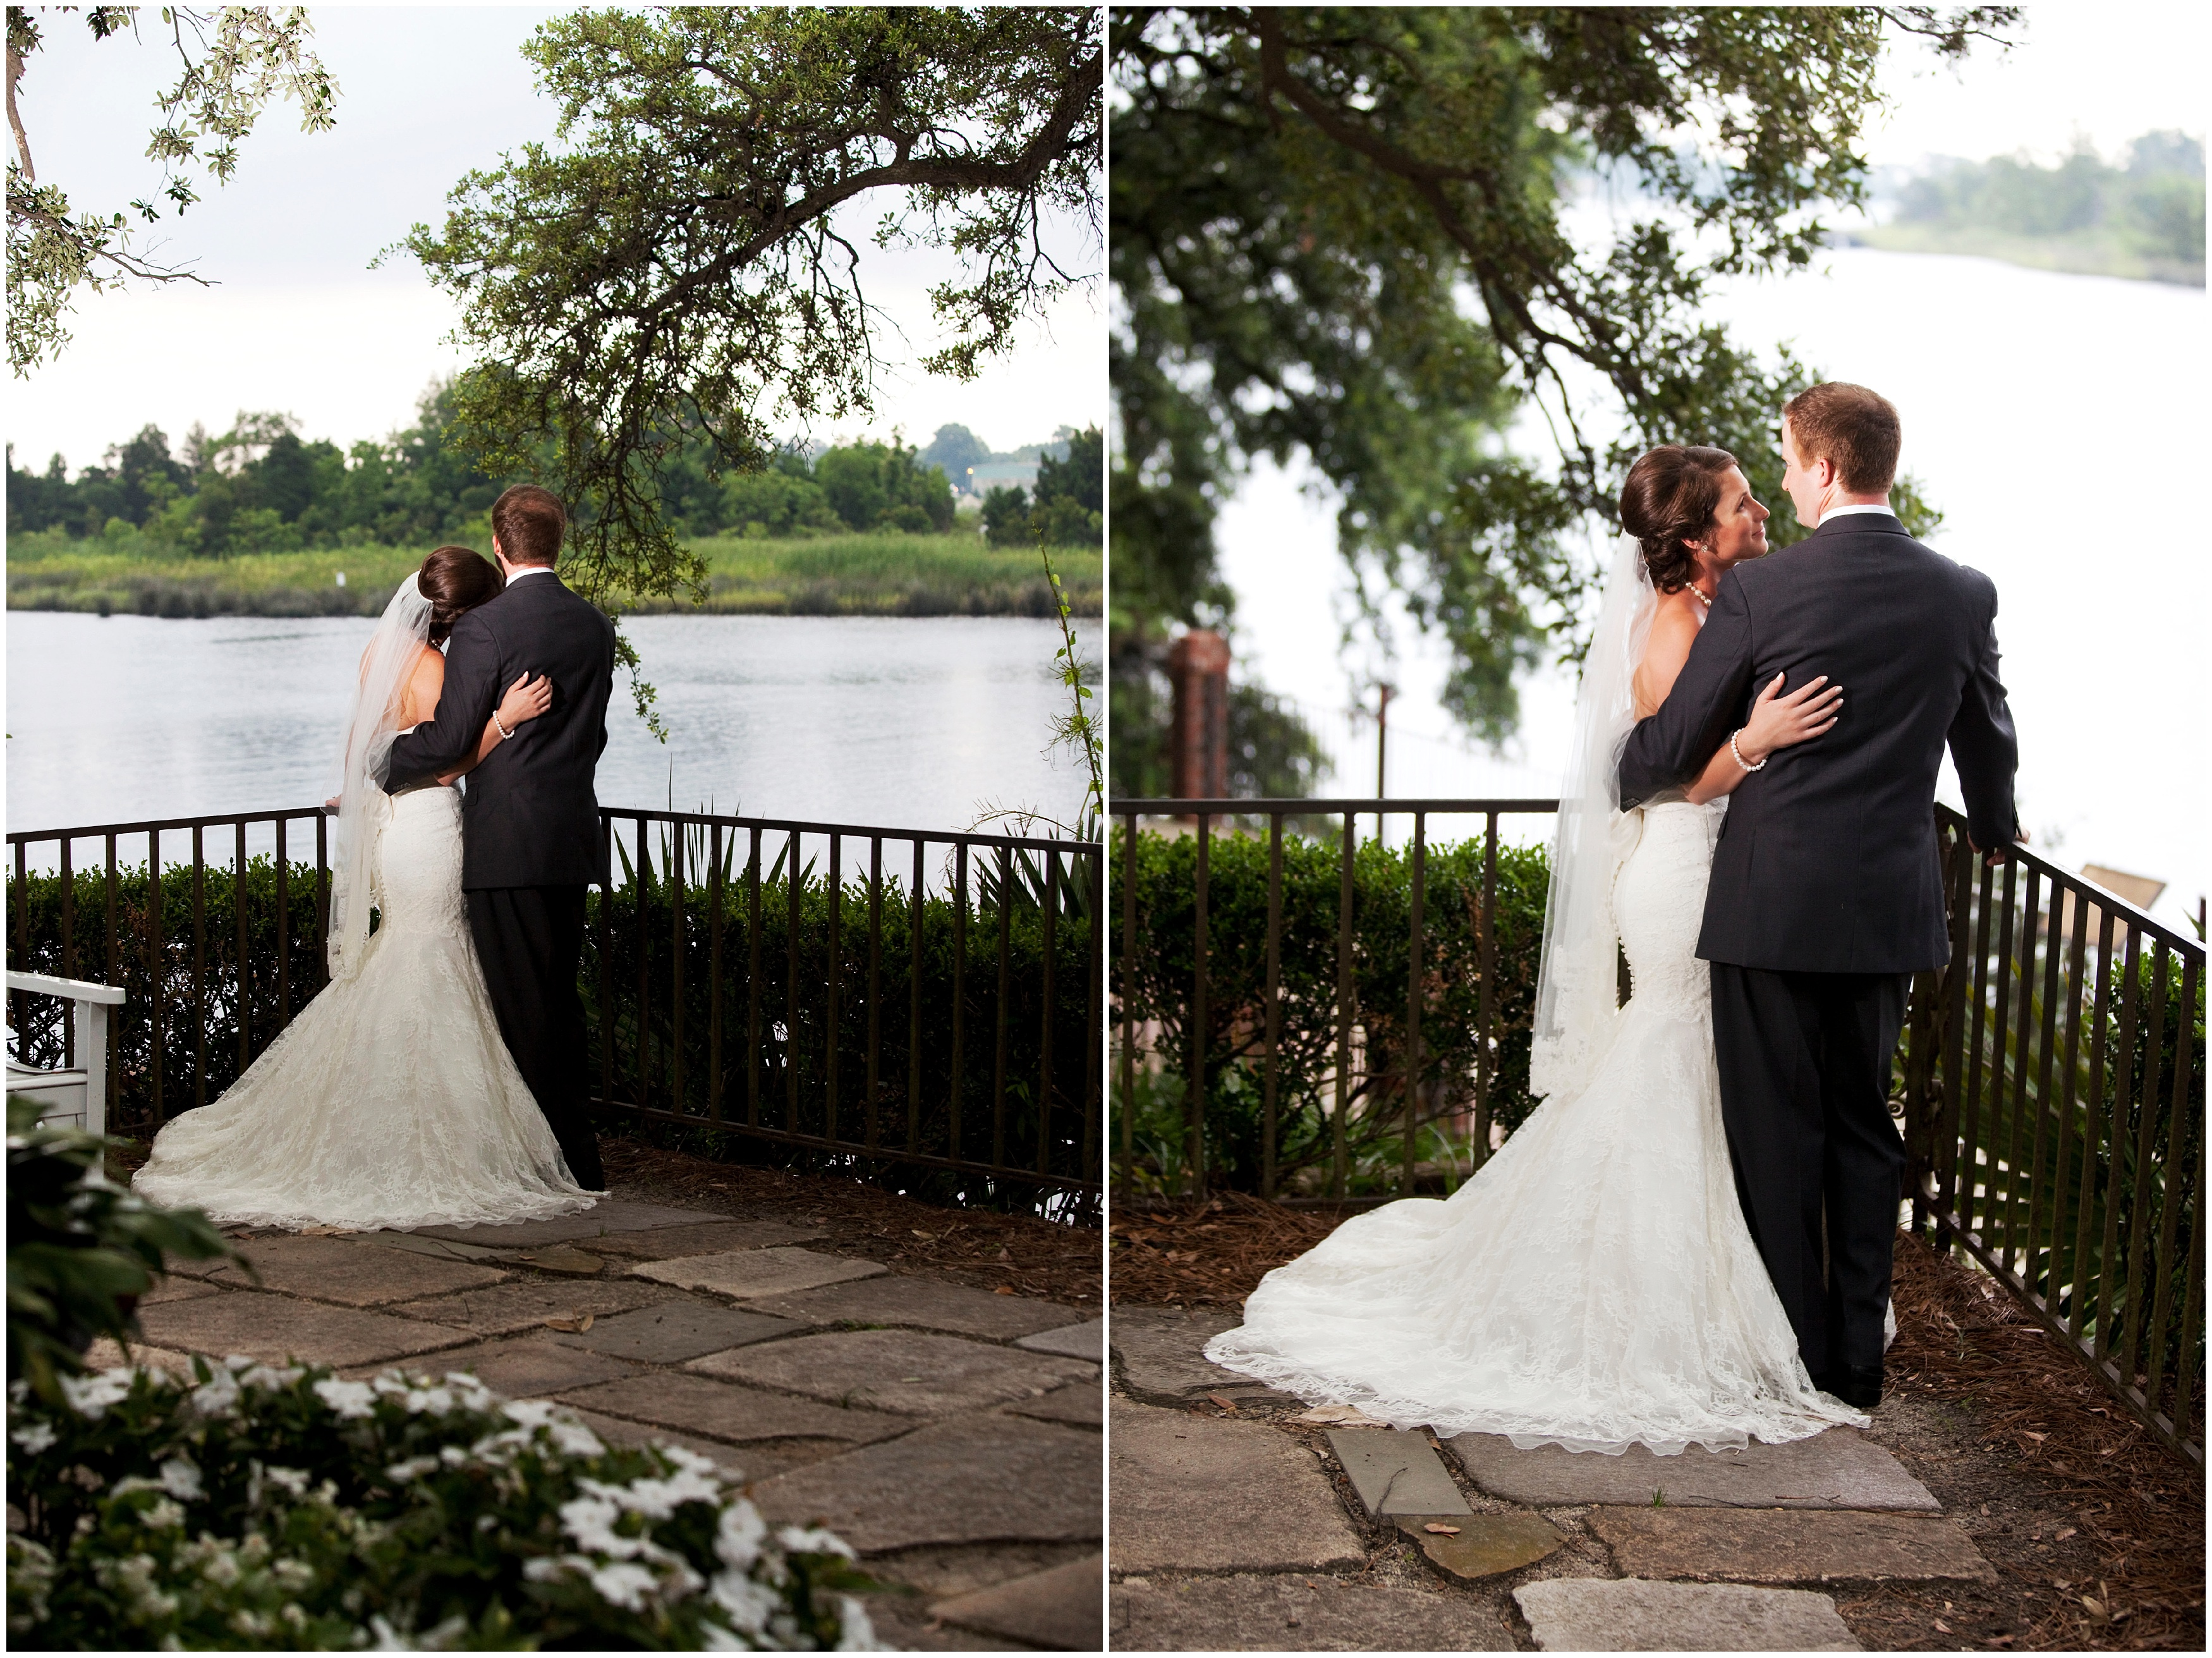 If You Are Searching For A Unique Wedding Venue With Endless Possibilities Or Know Of Bride To Be Who Is I Suggest Sharing These Images